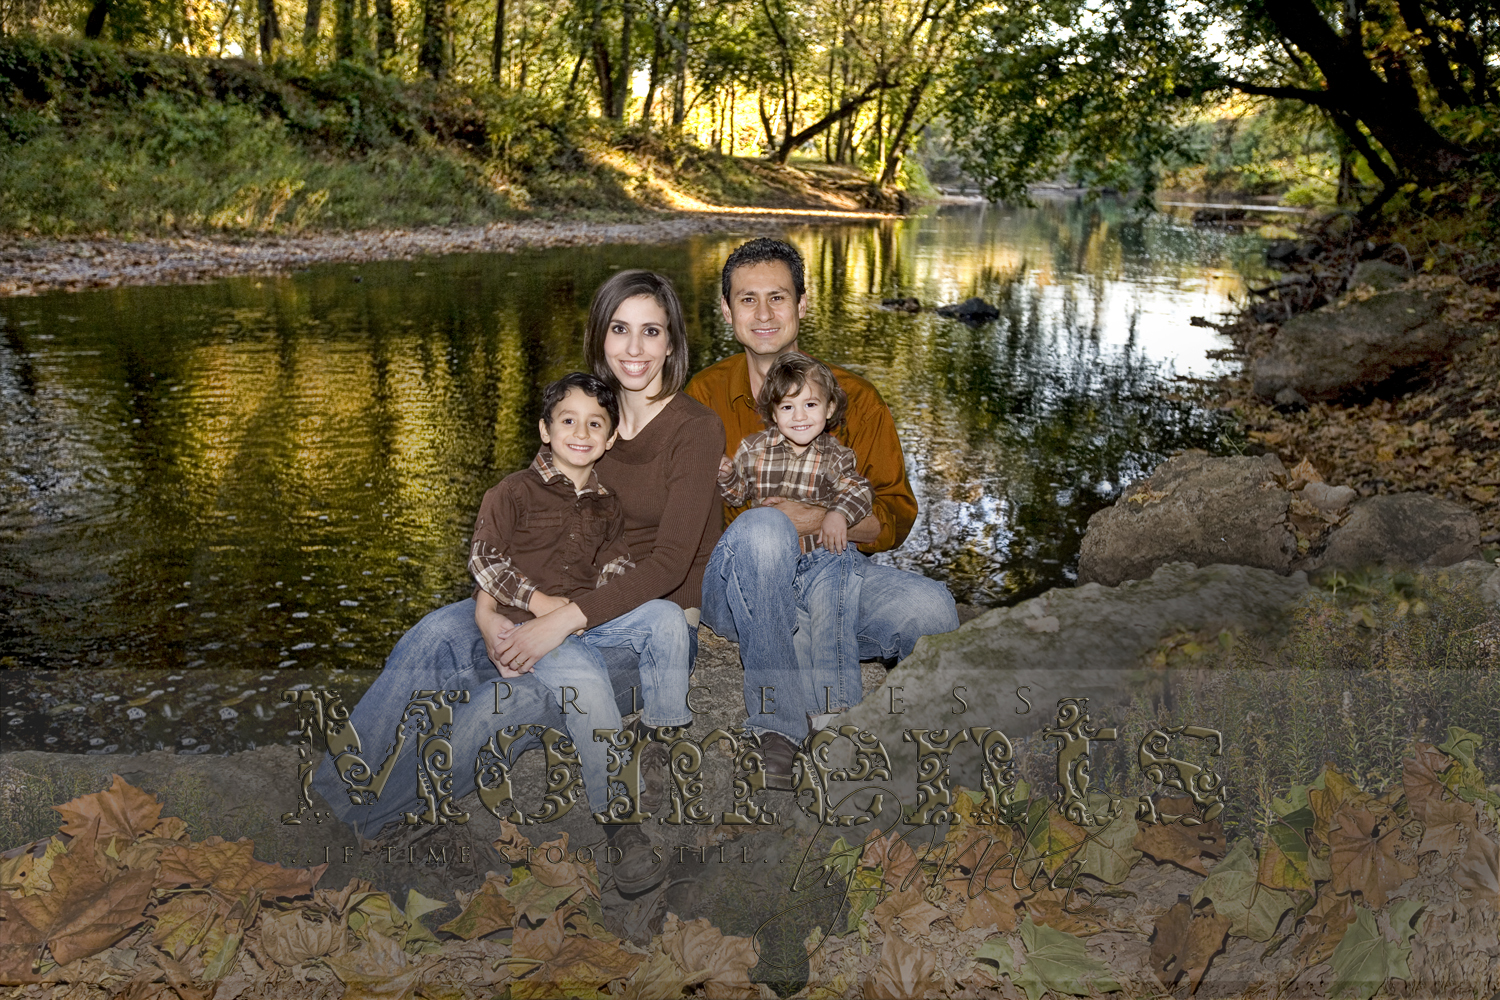 Outdoor Fall Family Picture Ideas http://pricelessmomentsbymelia.typepad.com/priceless_moments_by_meli/2008/10/last-call-for-fall-family-portraits.html